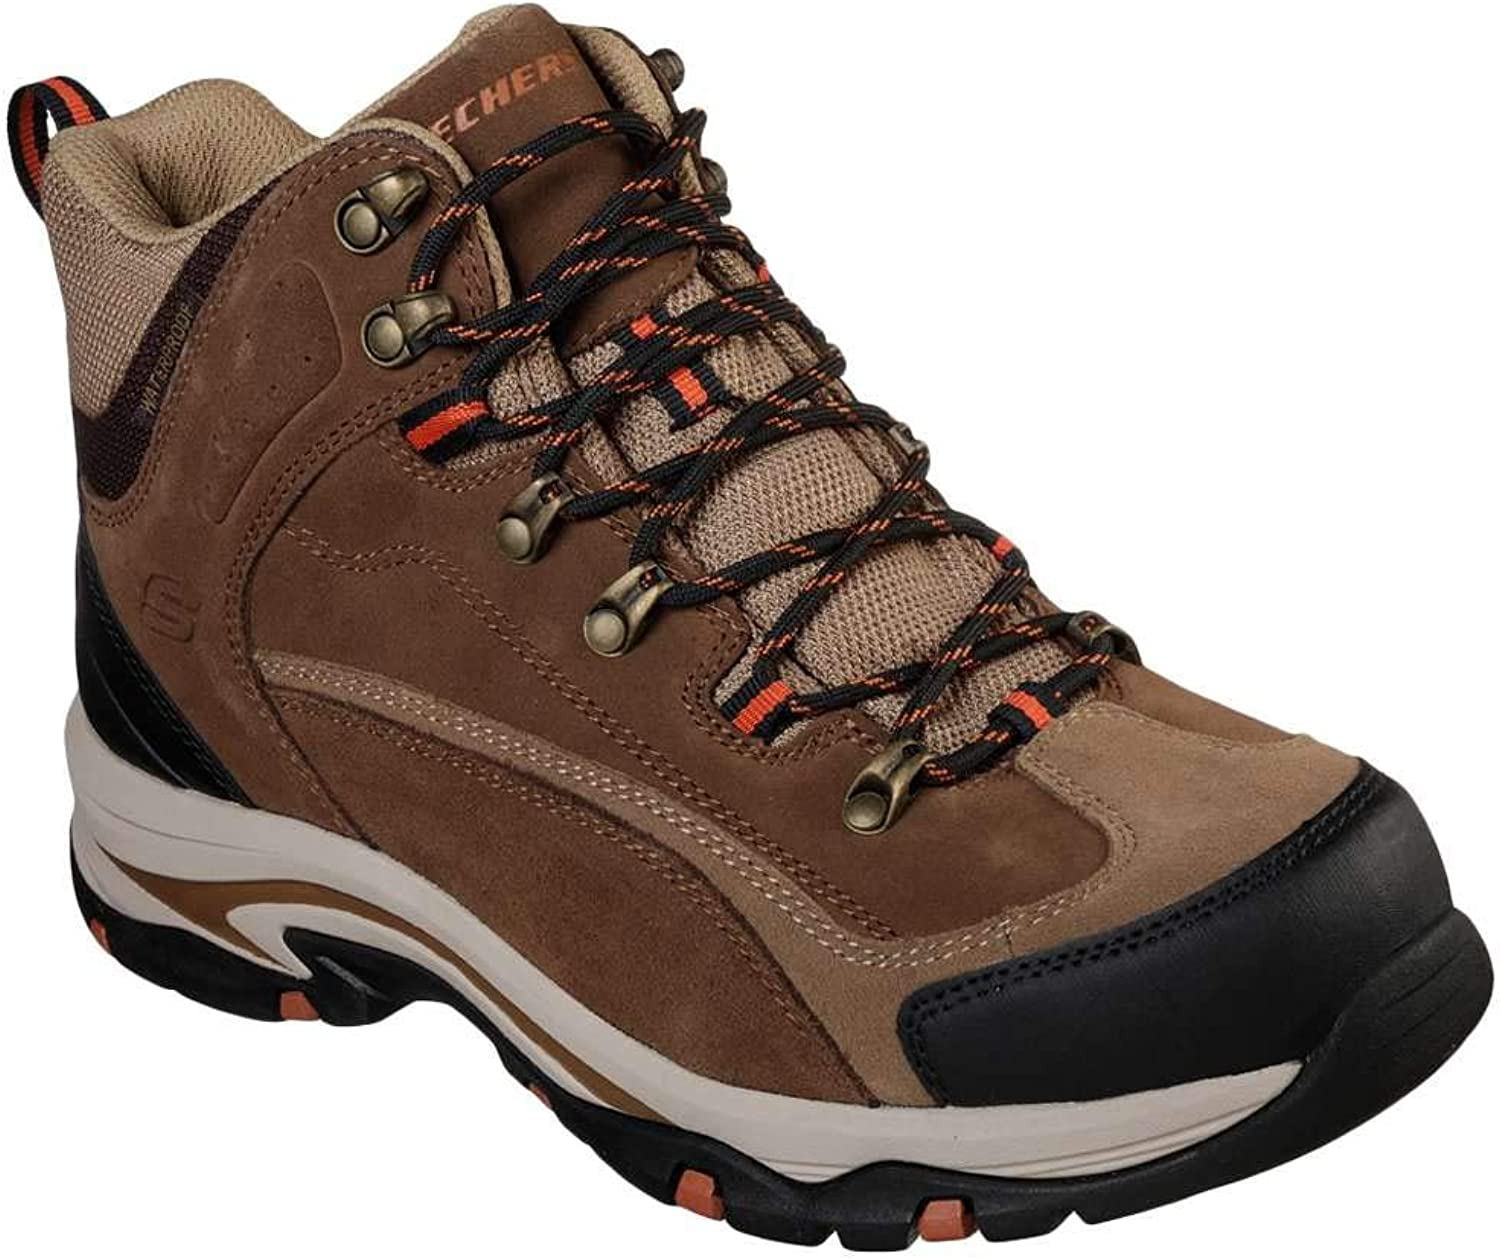 Skechers Men's Mid Suede Lace Up Boot Hiking